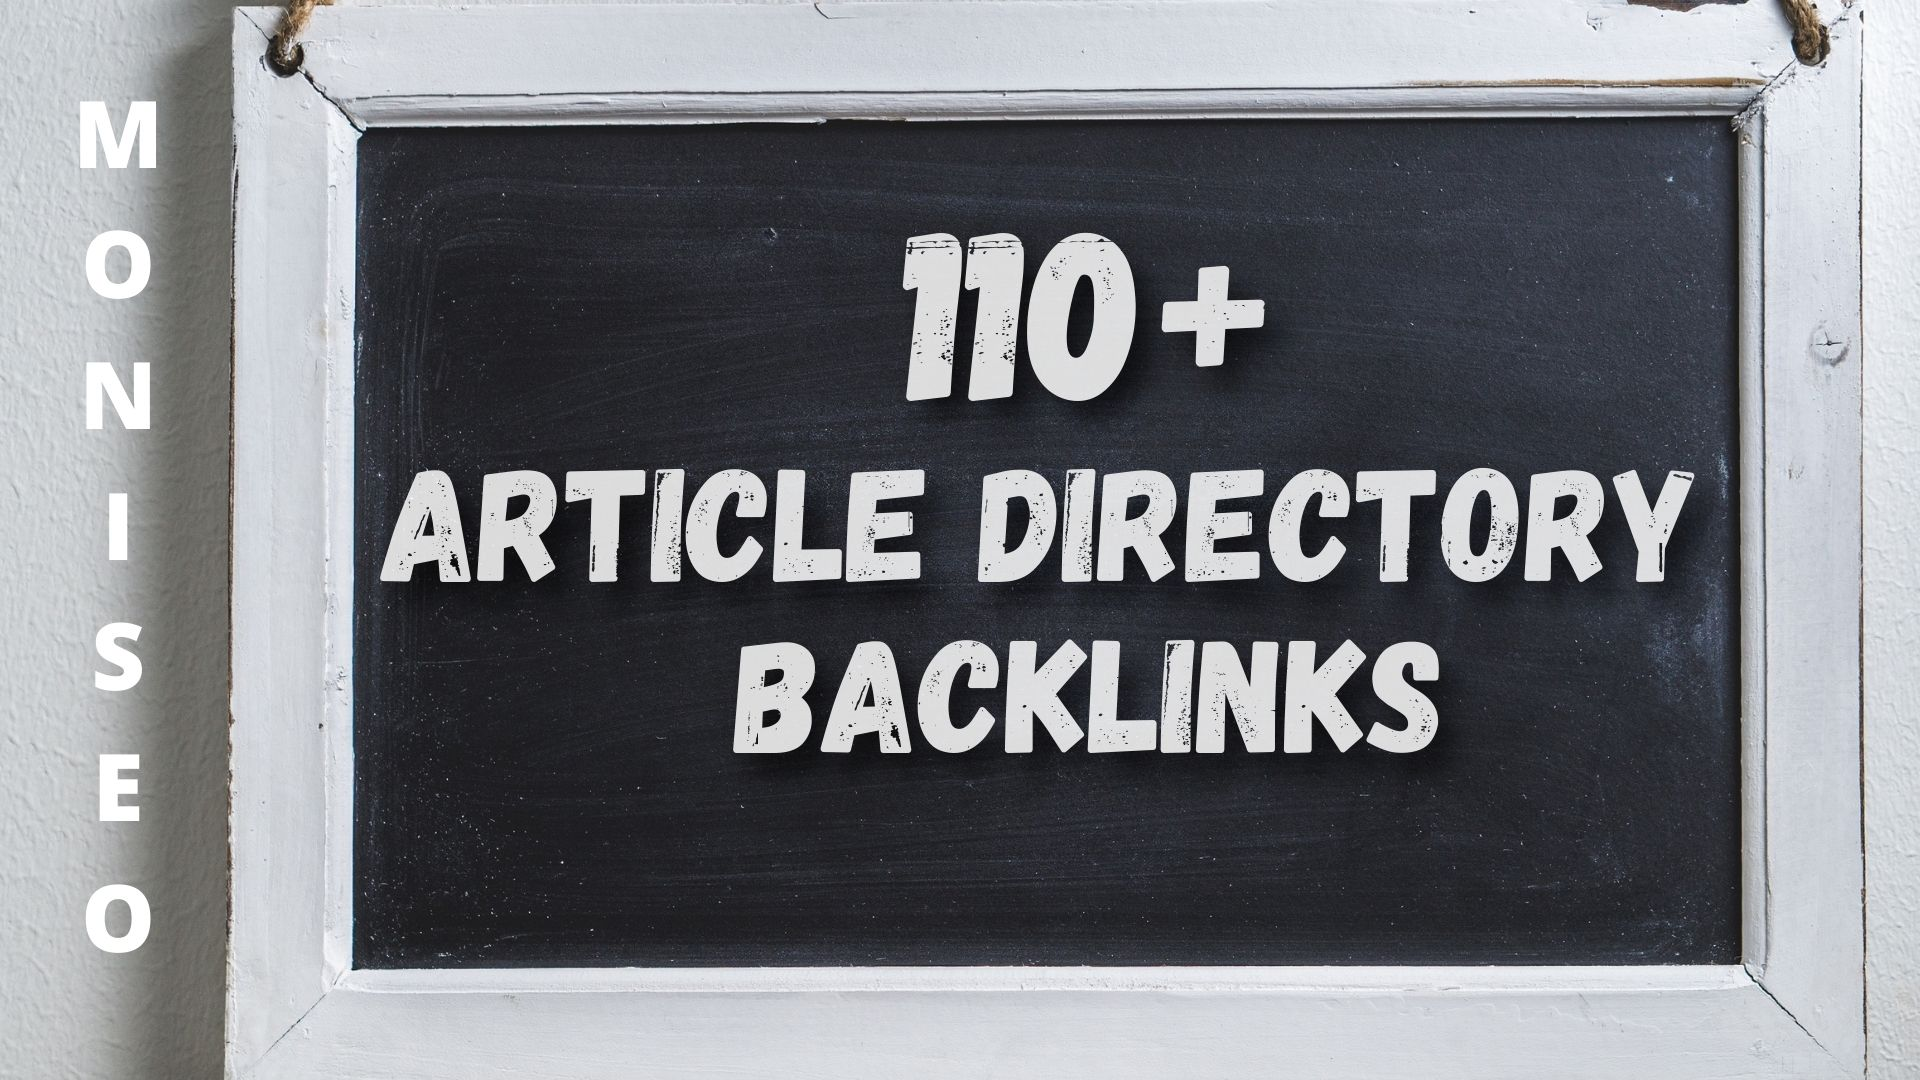 110+ Article Directory SEO Quality Backlinks